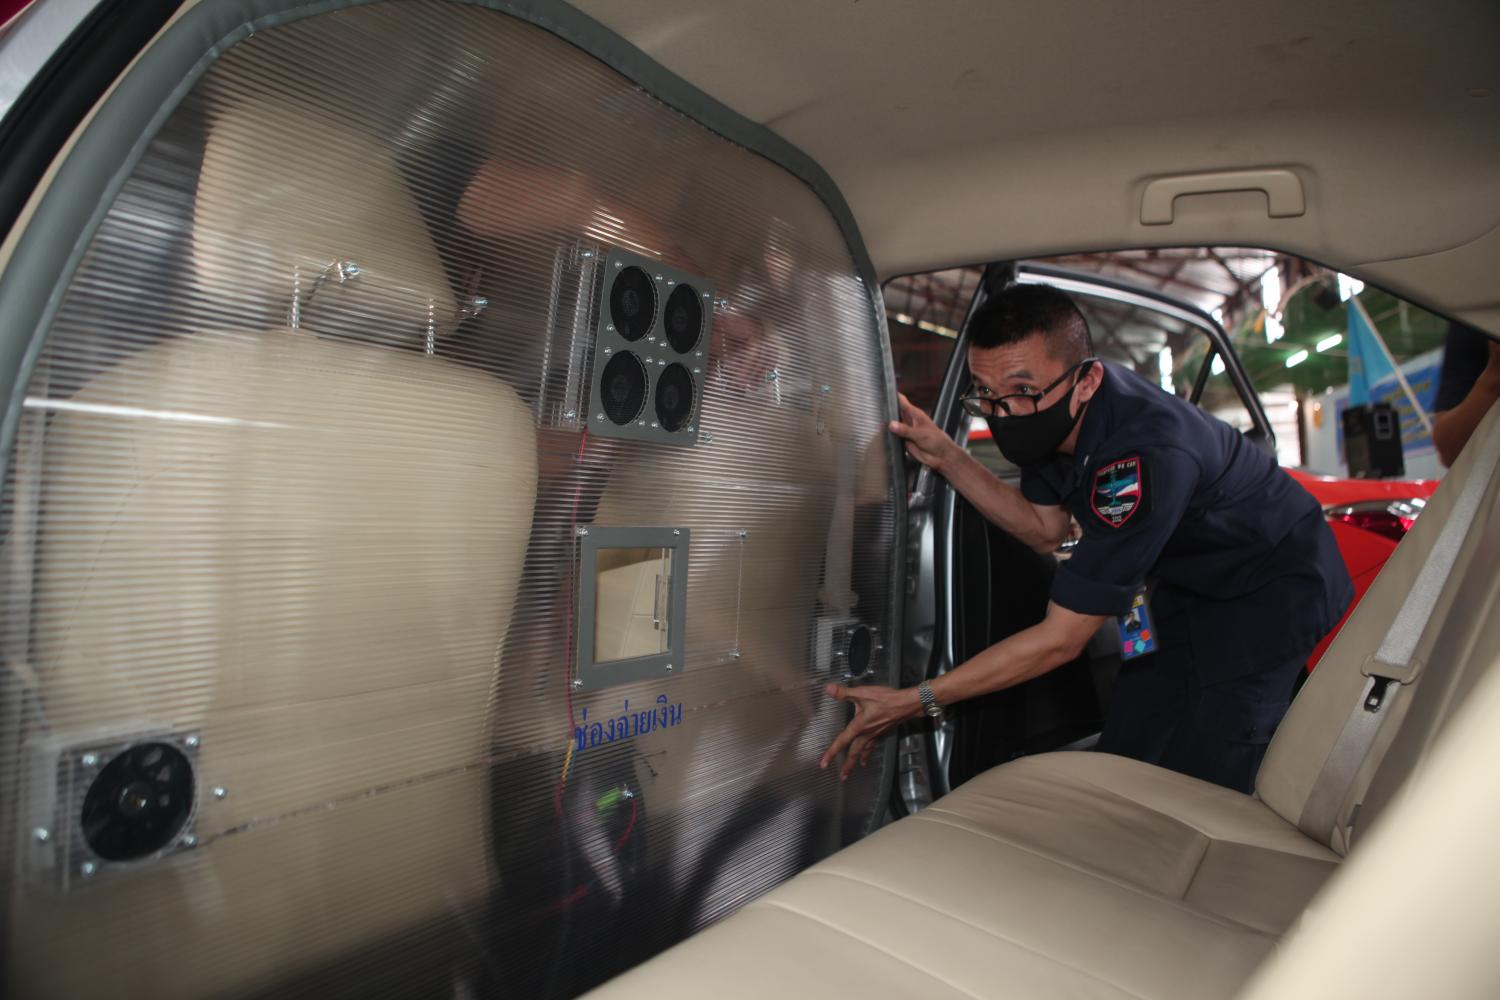 A a special partition designed by the Royal Thai Air Force is installed in a taxi to help prevent transmission of the coronavirus. Known as a 'taxi bulkhead barrier', it can be installed and removed without the need to modify the interior of the vehicle. Apichart Jinakul